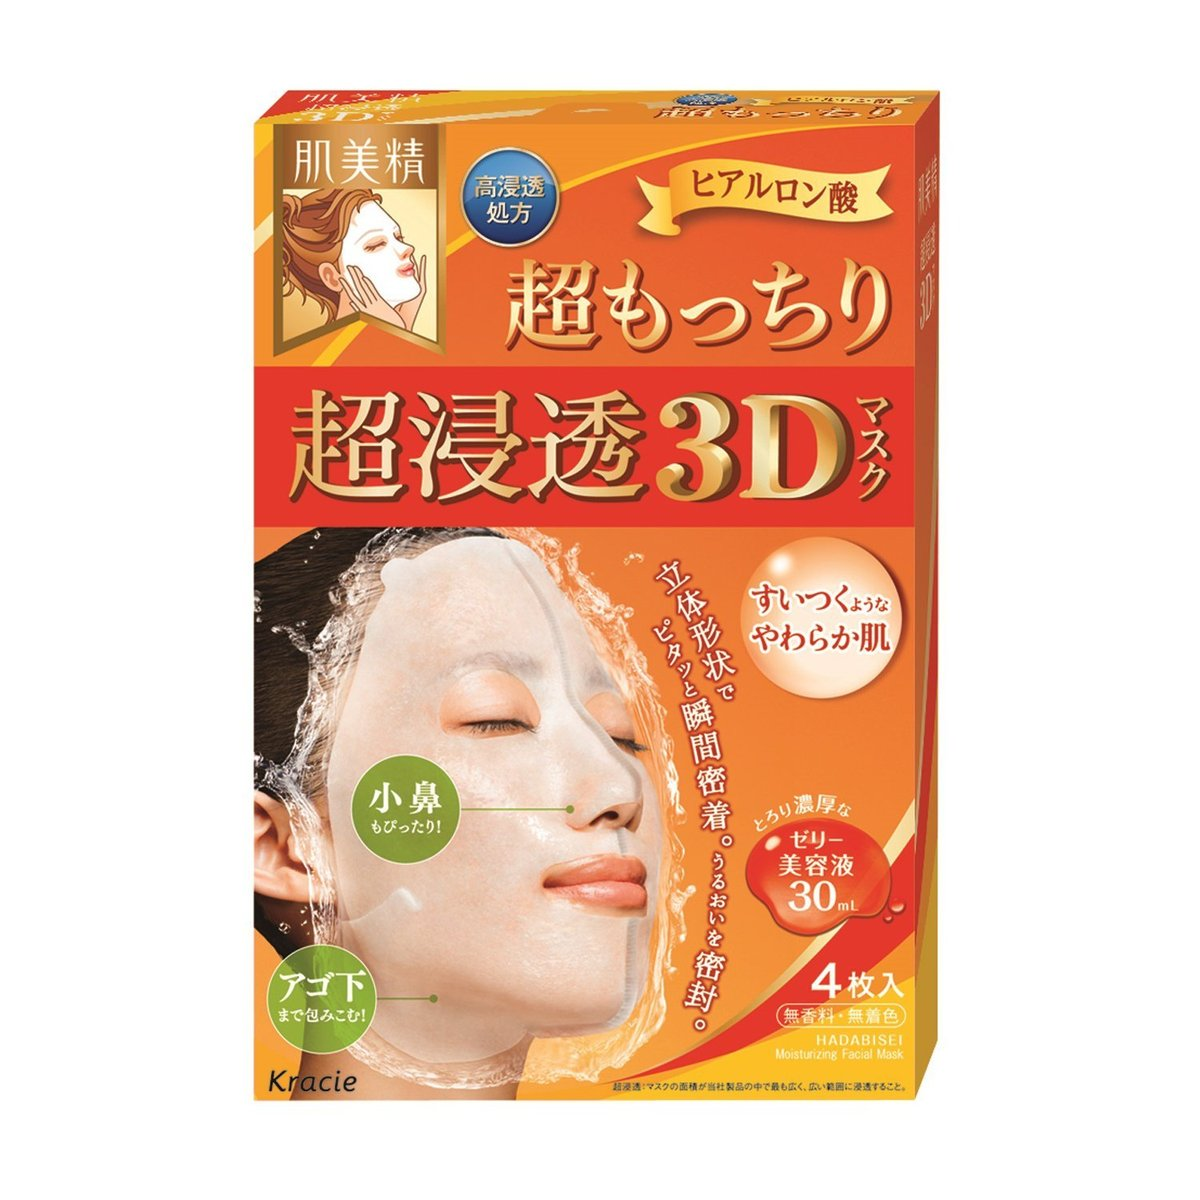 Deep Moisture Hyaluronic acid 3D Mask 4Pcs (Orange)